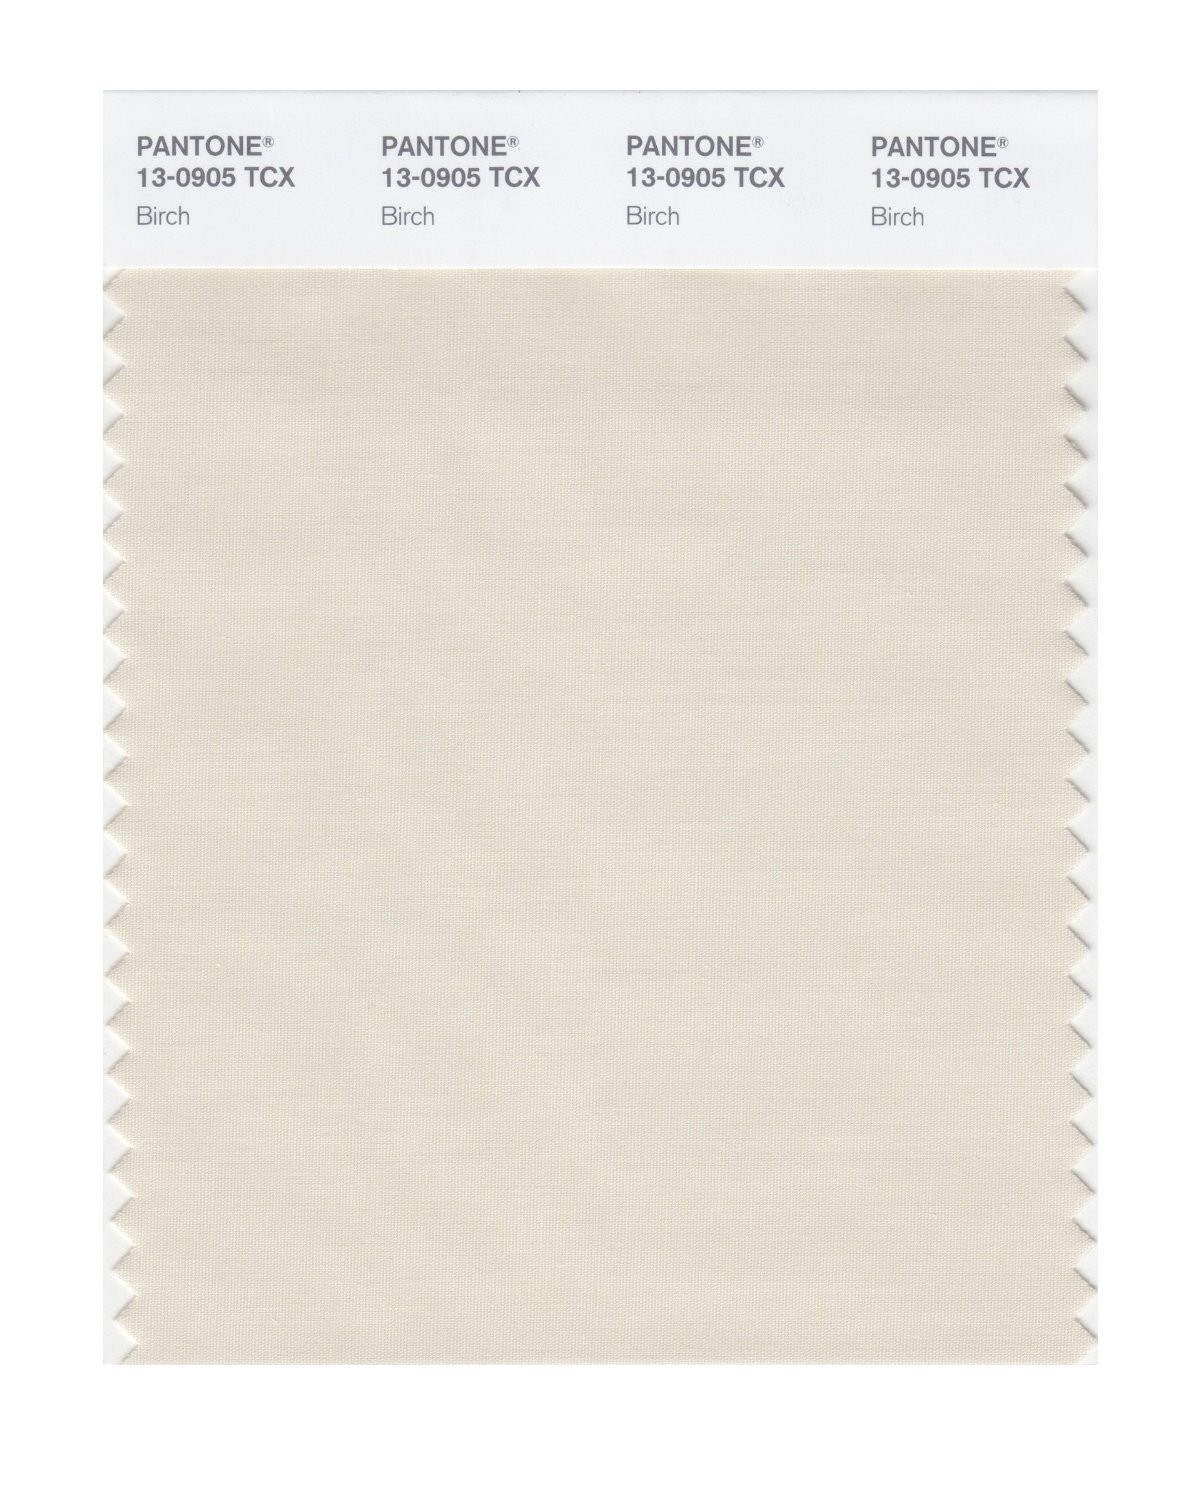 Pantone 13-0905 TCX Swatch Card Birch